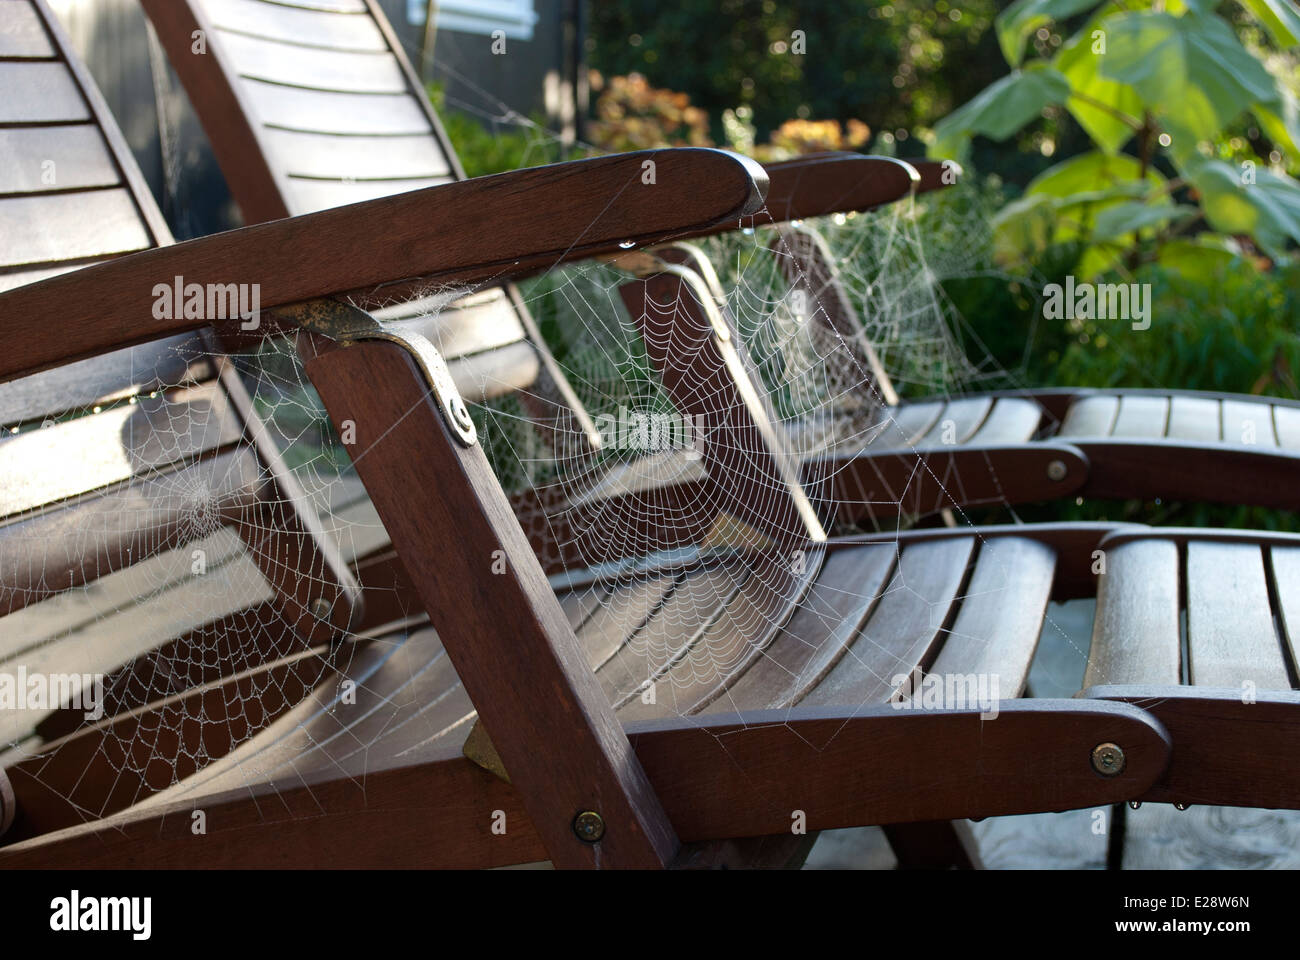 Row of Spiders Webs on Garden Loungers - Stock Image